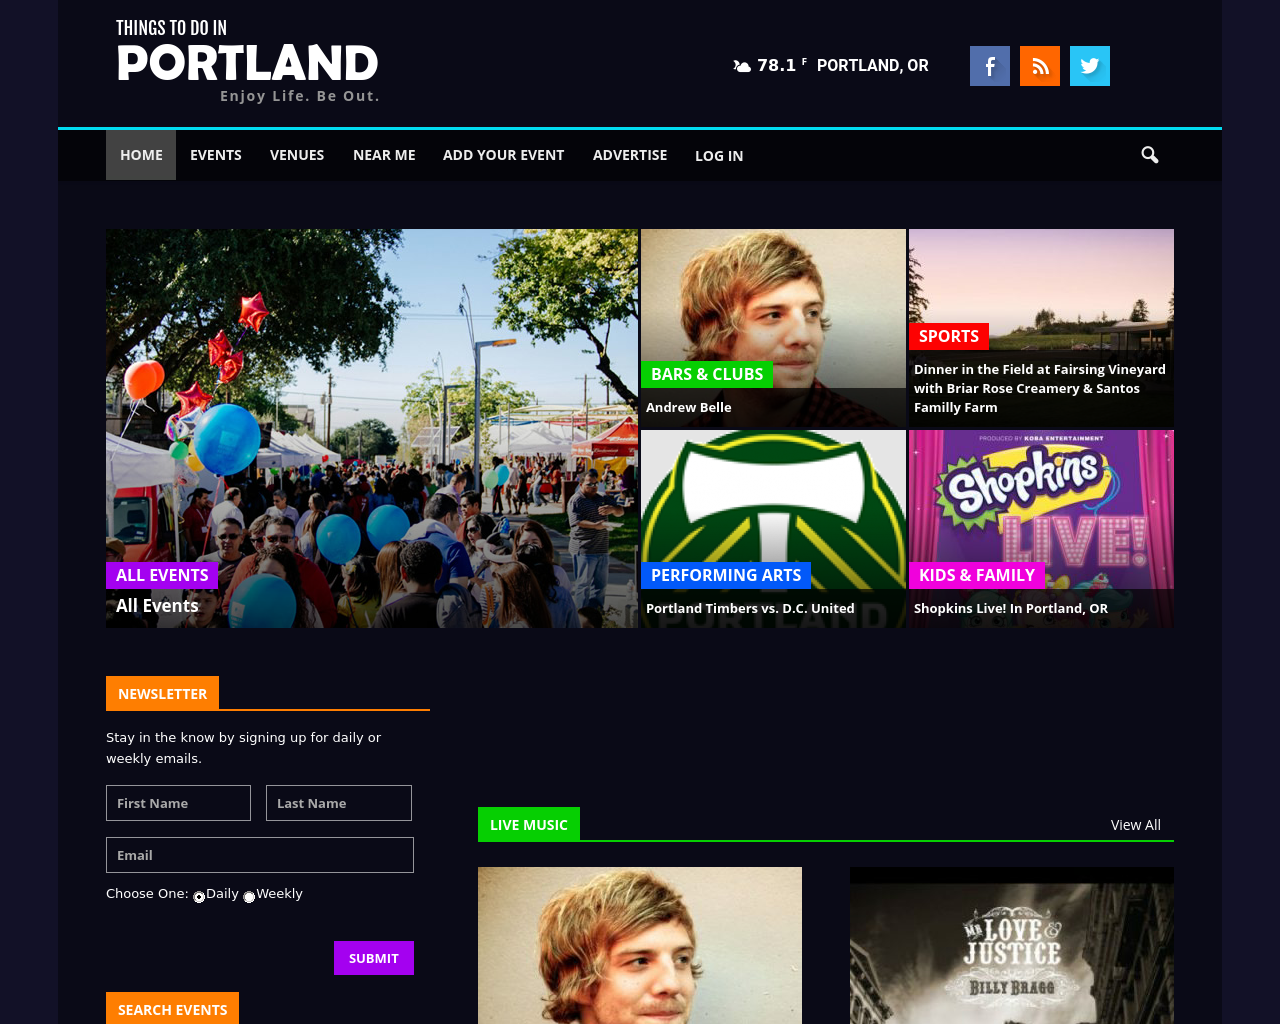 Things-To-Do-In-Portland-Advertising-Reviews-Pricing